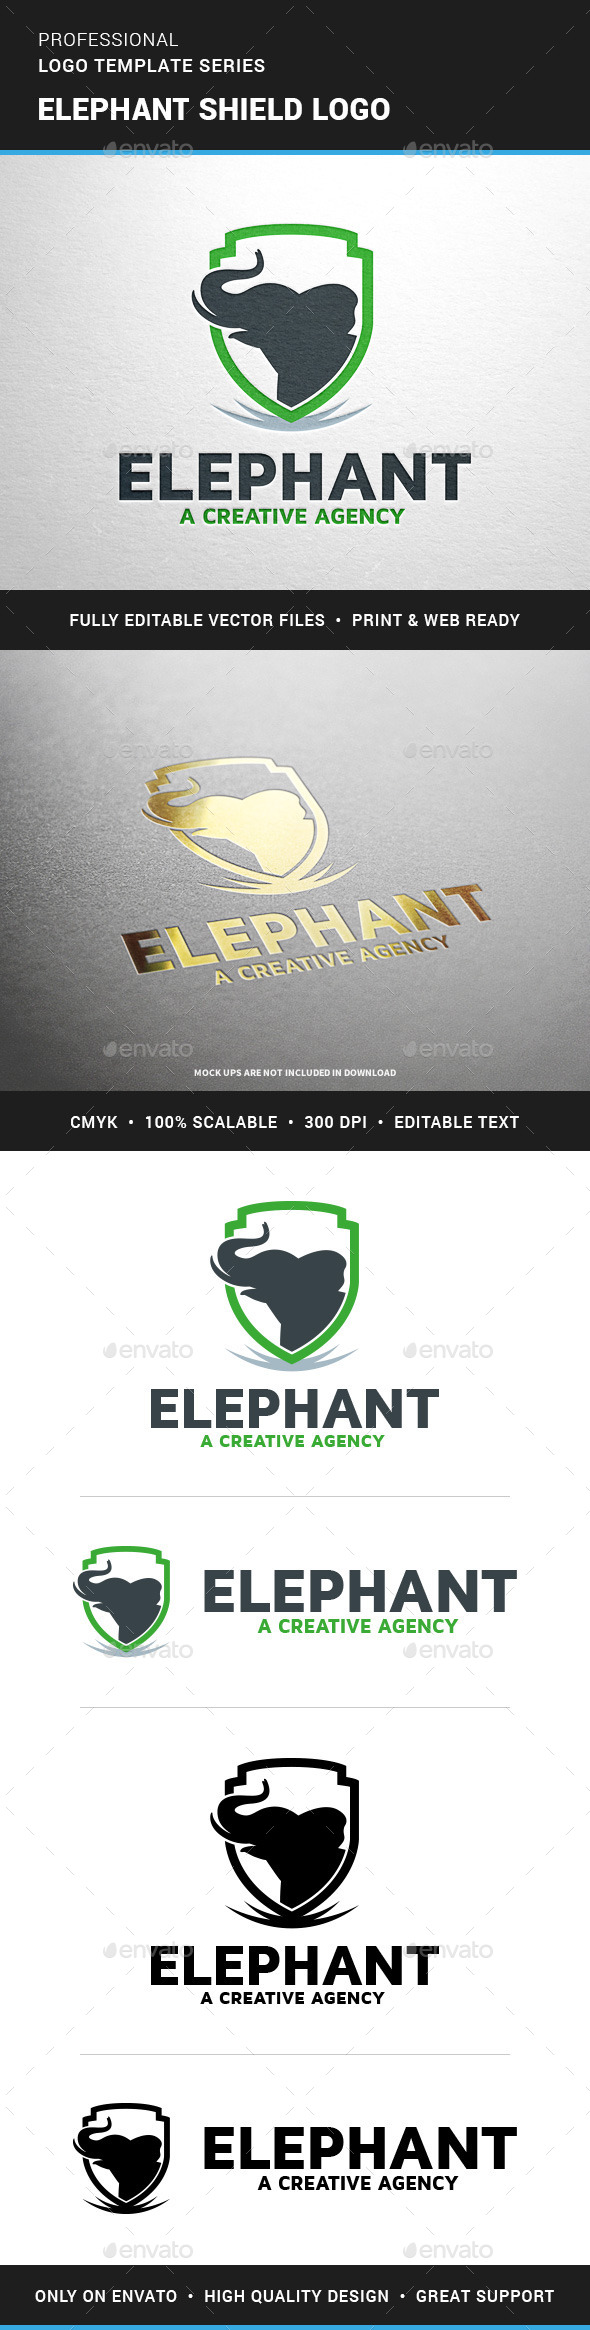 Elephant Shield Logo Template - Animals Logo Templates